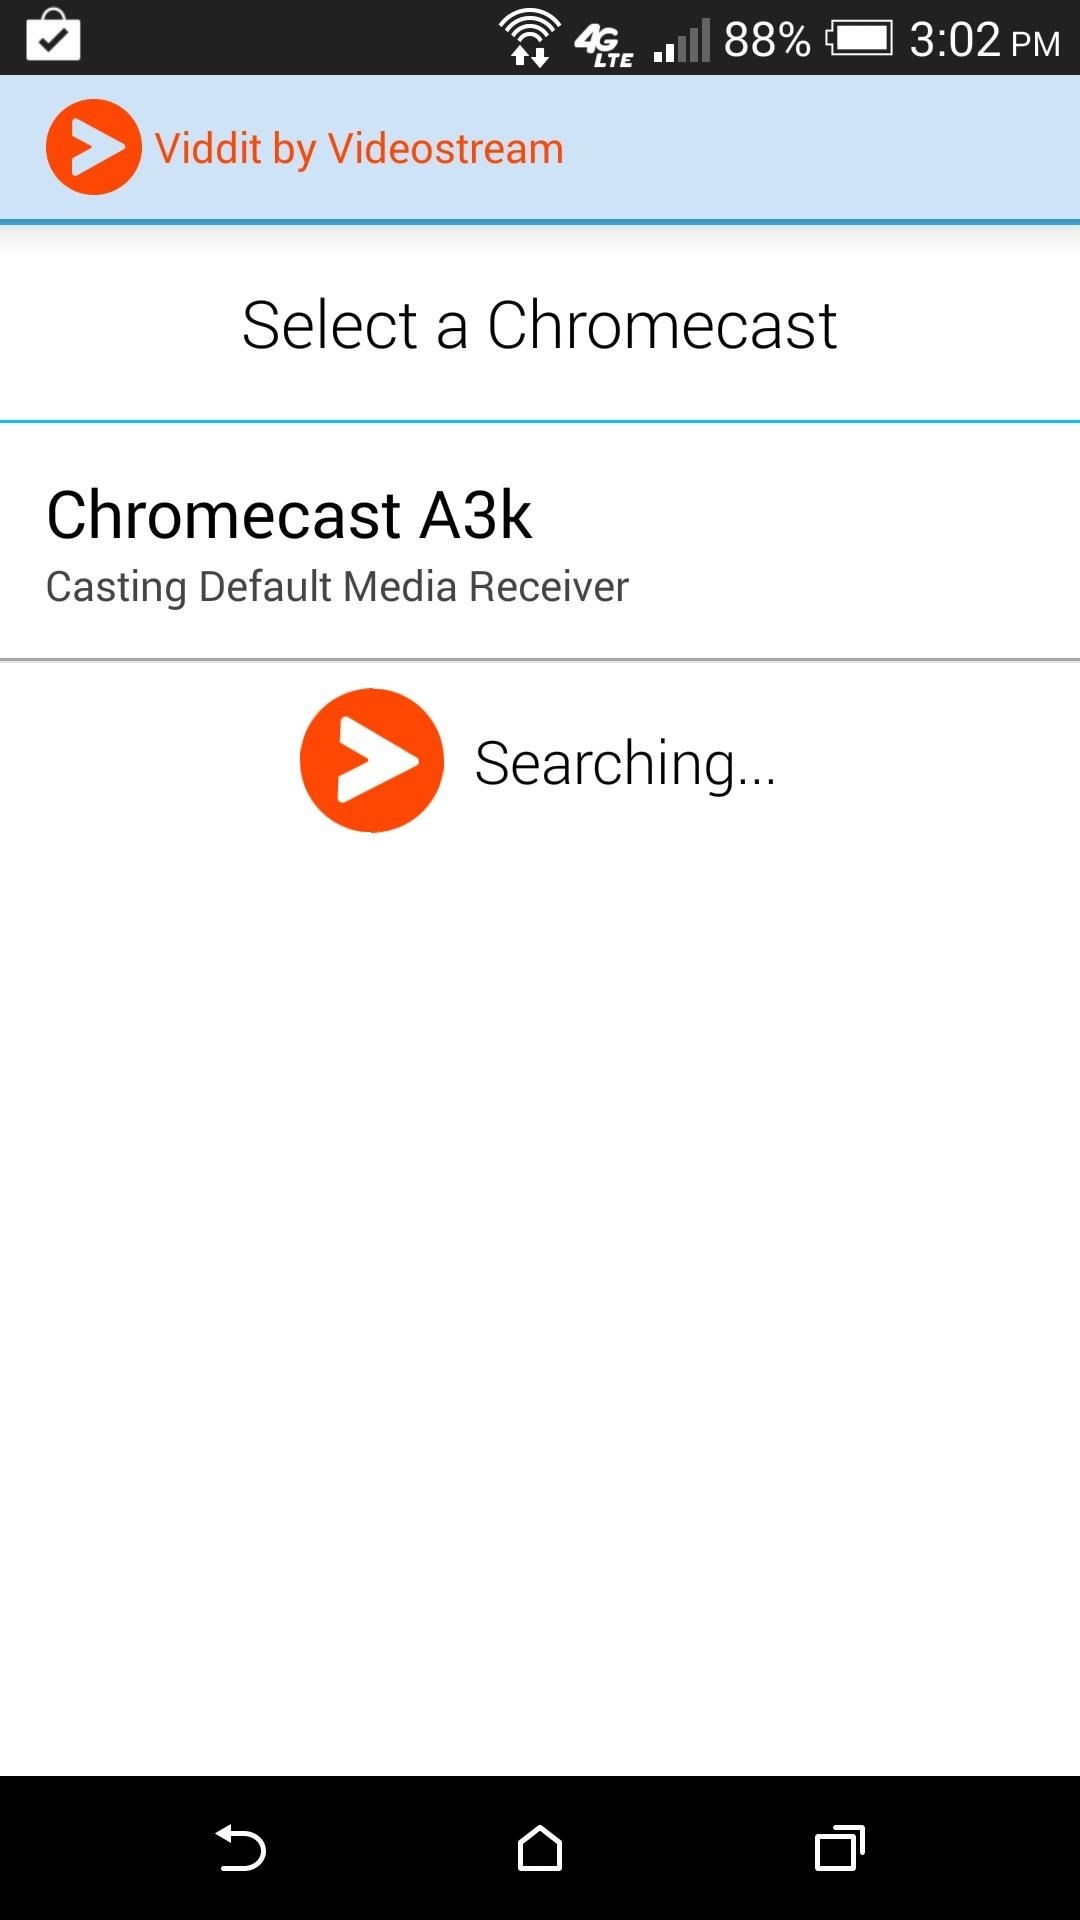 How to Cast Videos from Your Favorite Subreddit to Your TV with Chromecast